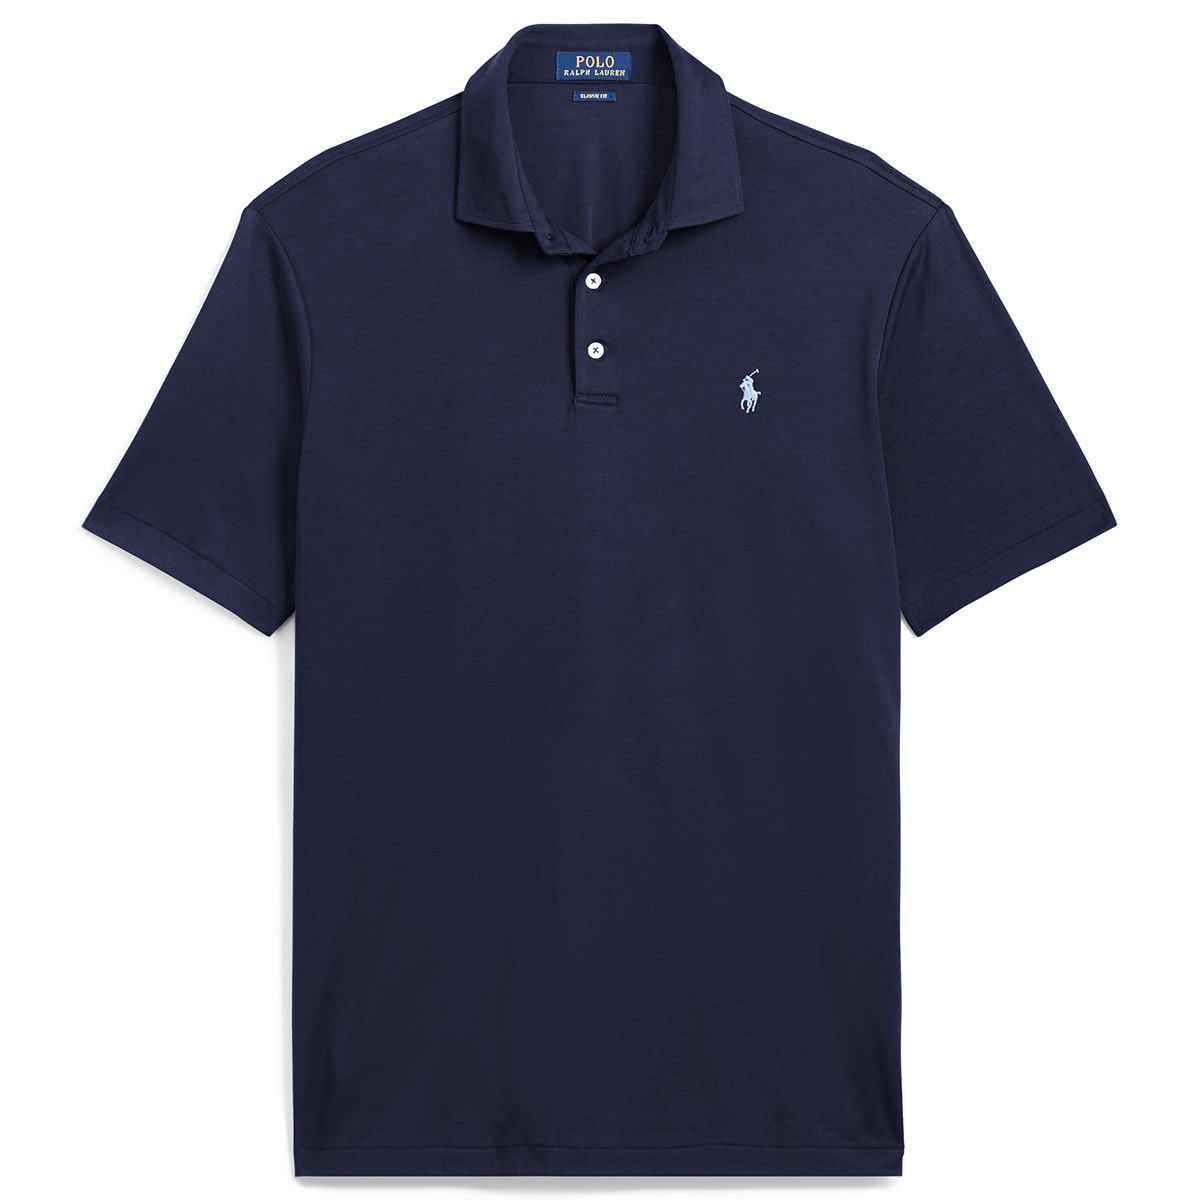 Polo Ralph Lauren - Men s Clothing and Shoes - Macy s d3c2a08d68f